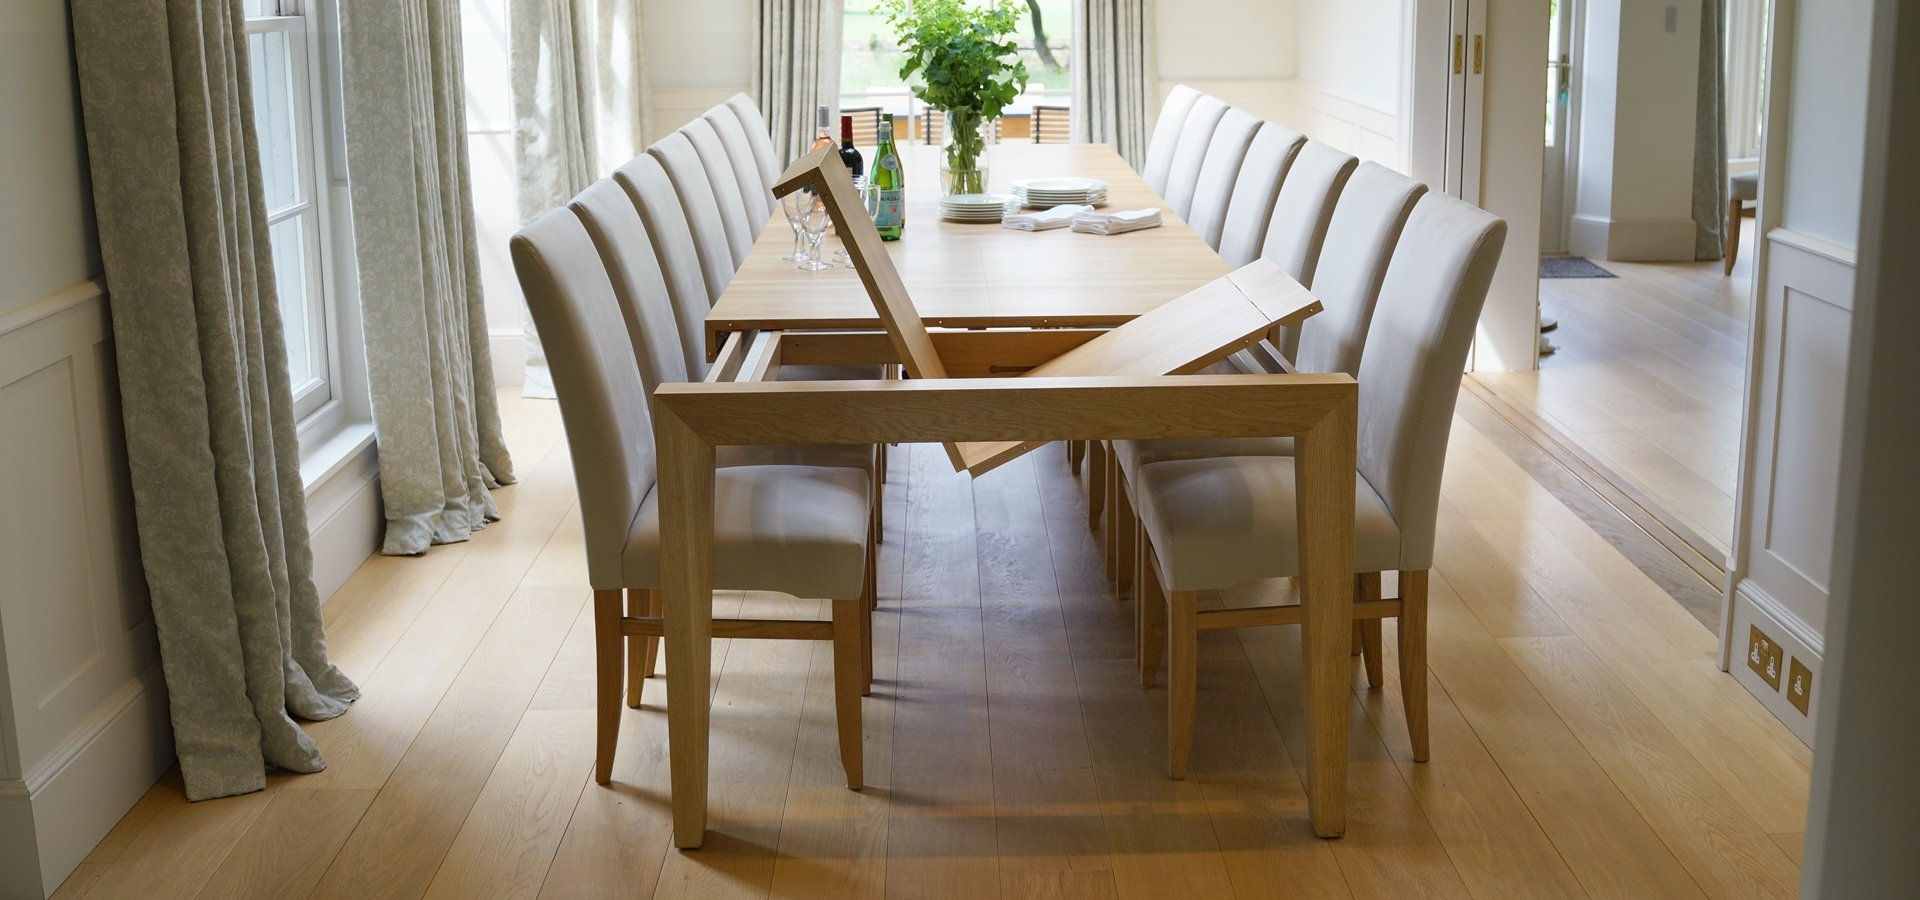 Contemporary Dining Room Tables And Chairs Pertaining To Most Popular Contemporary Dining Tables & Furnitureberrydesign (View 23 of 25)